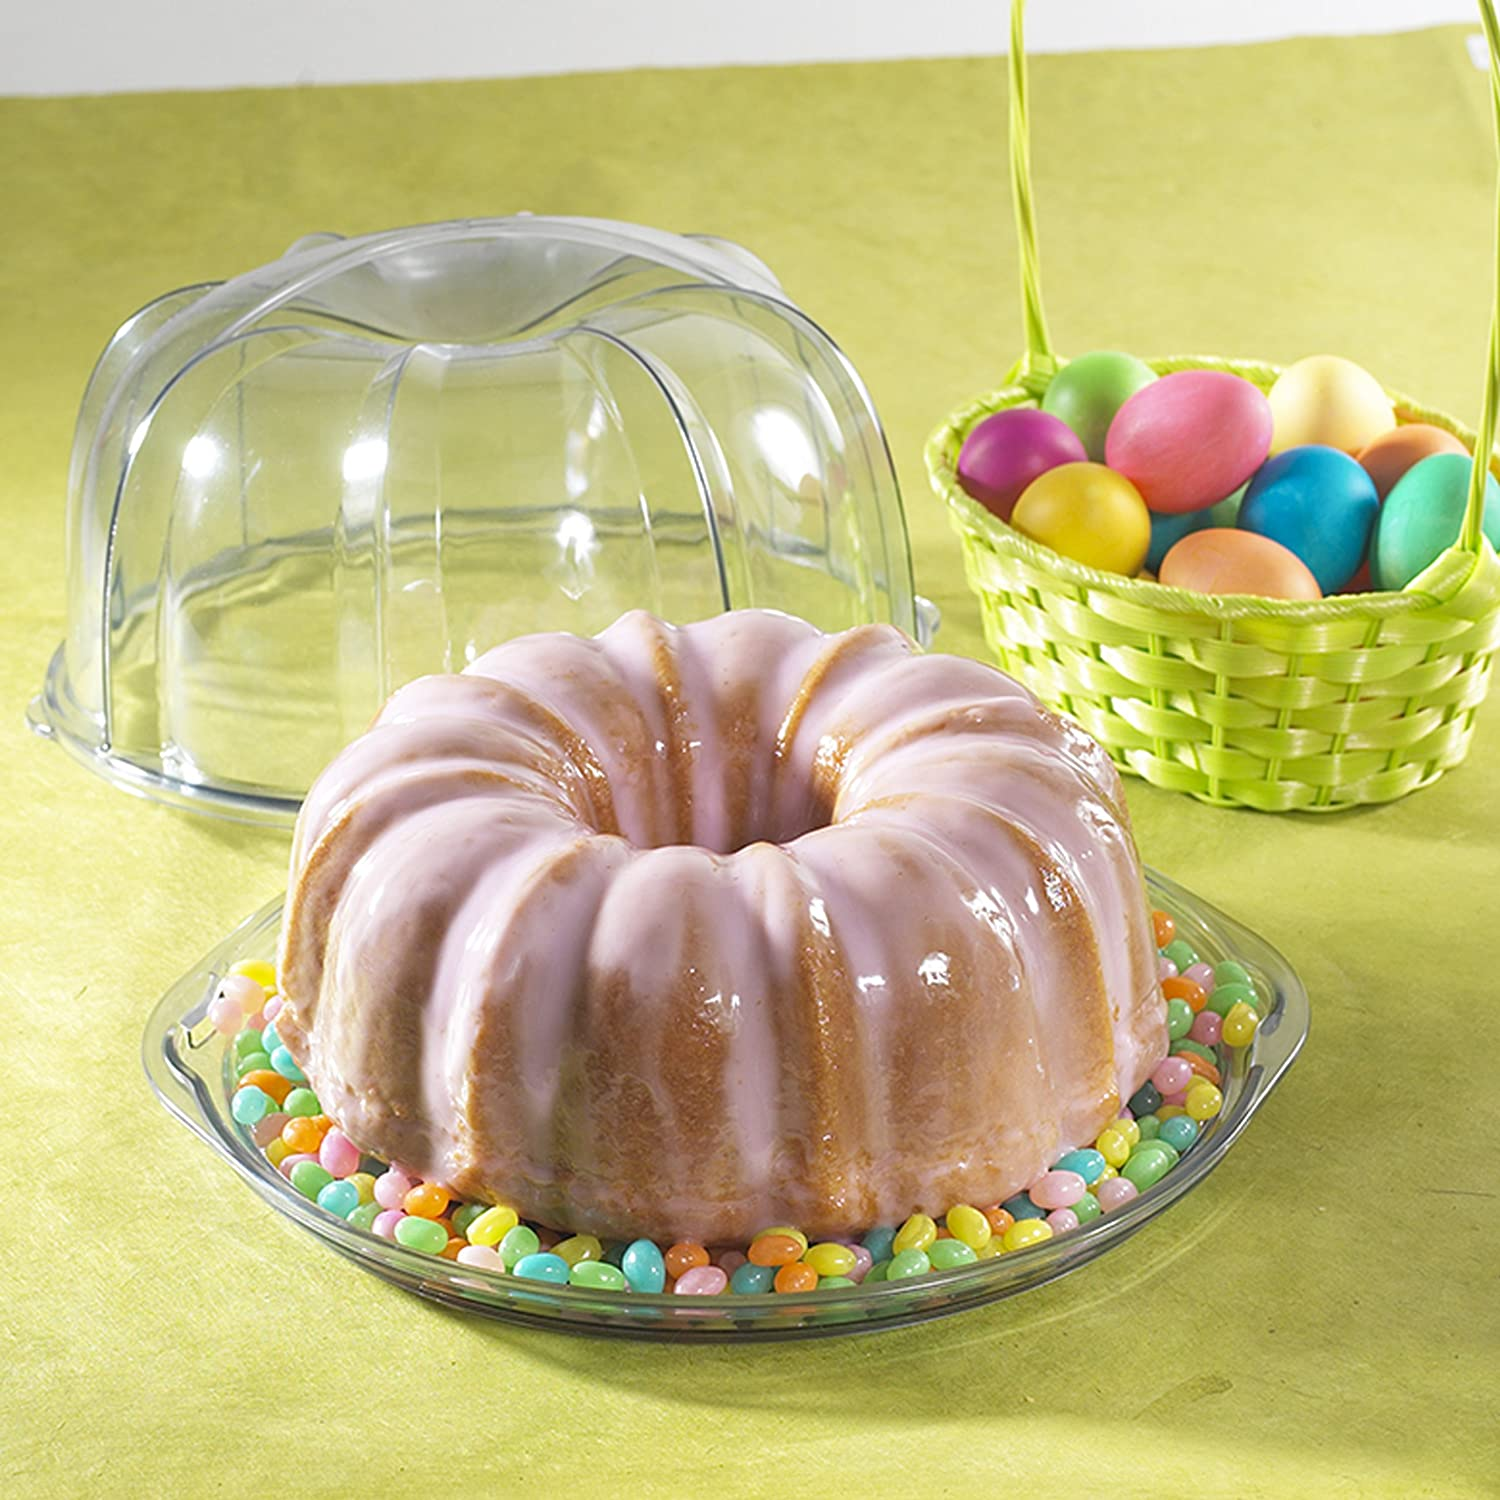 Nordic Ware Cake Carrier